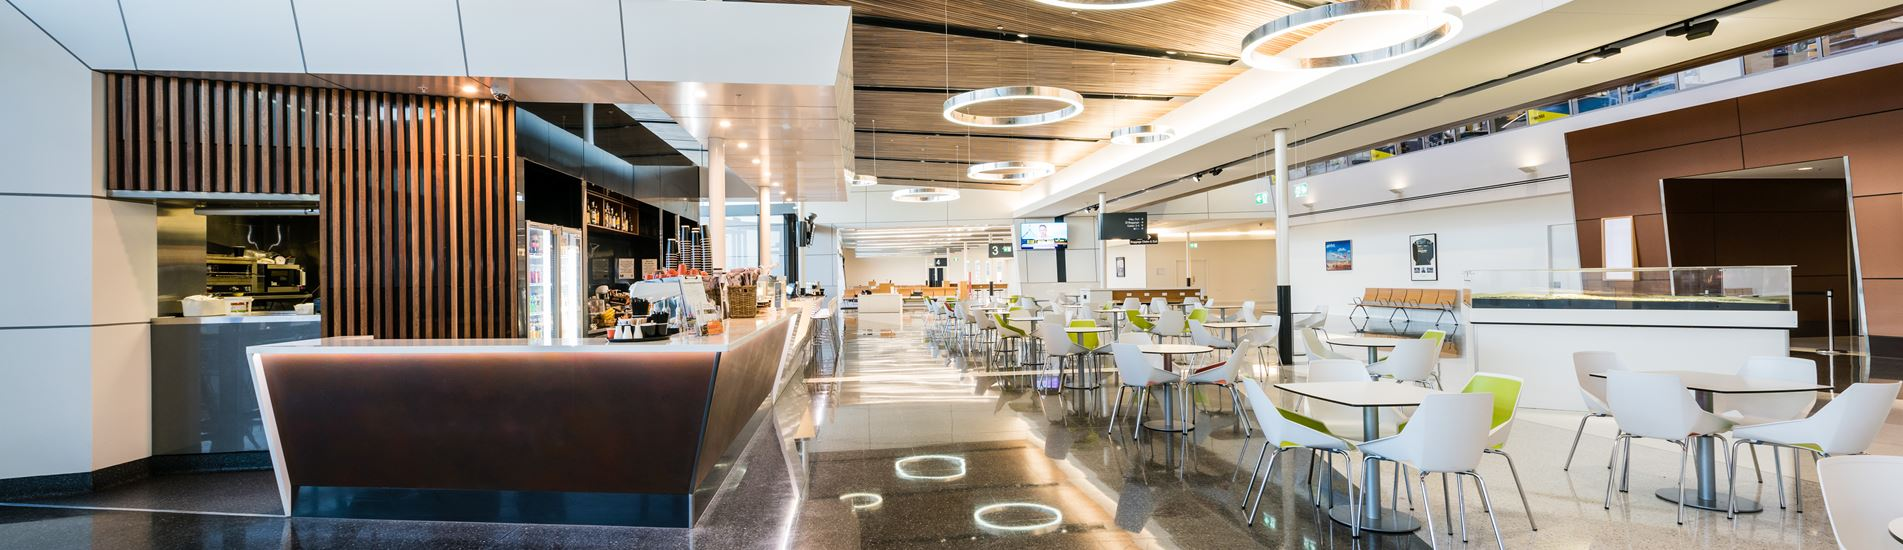 Toowoomba Wellcamp Airport | Altitude Café & Bar | Copyright: Lucy RC Photography